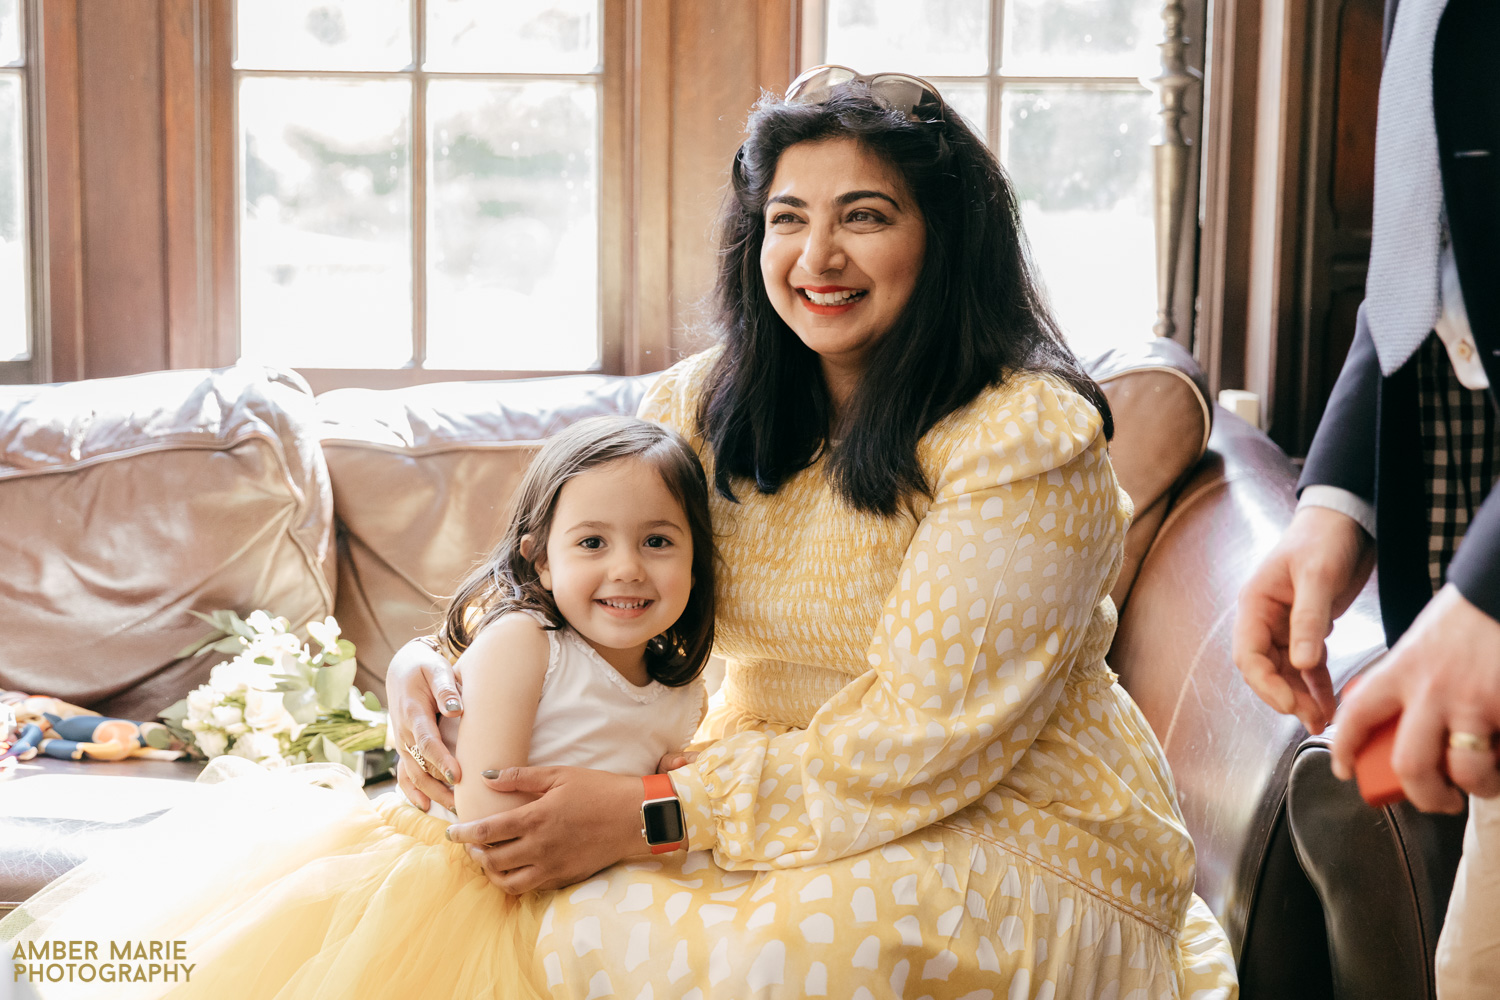 Natural wedding photography of guest and daughter wearing yellow at wedding